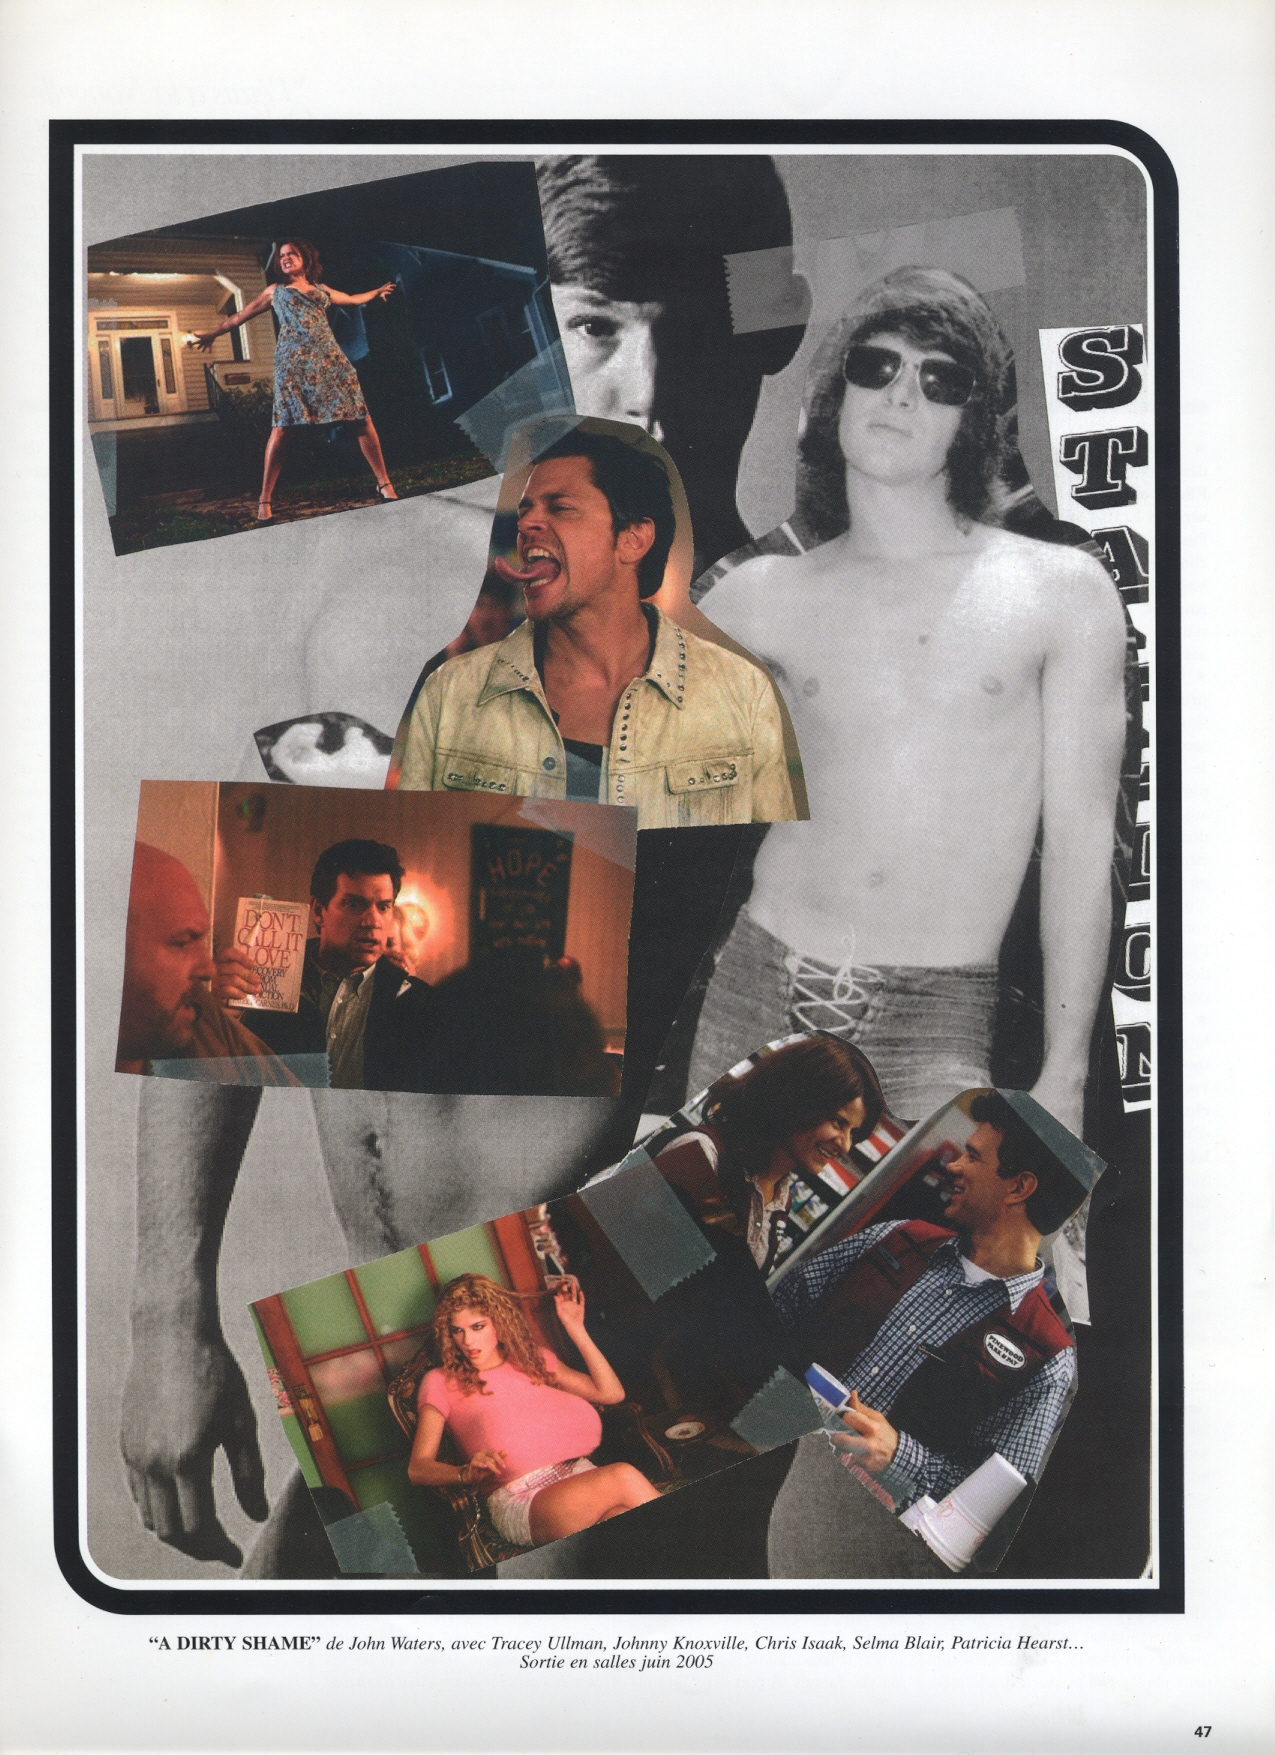 A DIRTY SHAME DIRECTED BY JOHN WATERS | 2004 | REBEL MAGAZINE | SPRING/SUMMER 2005